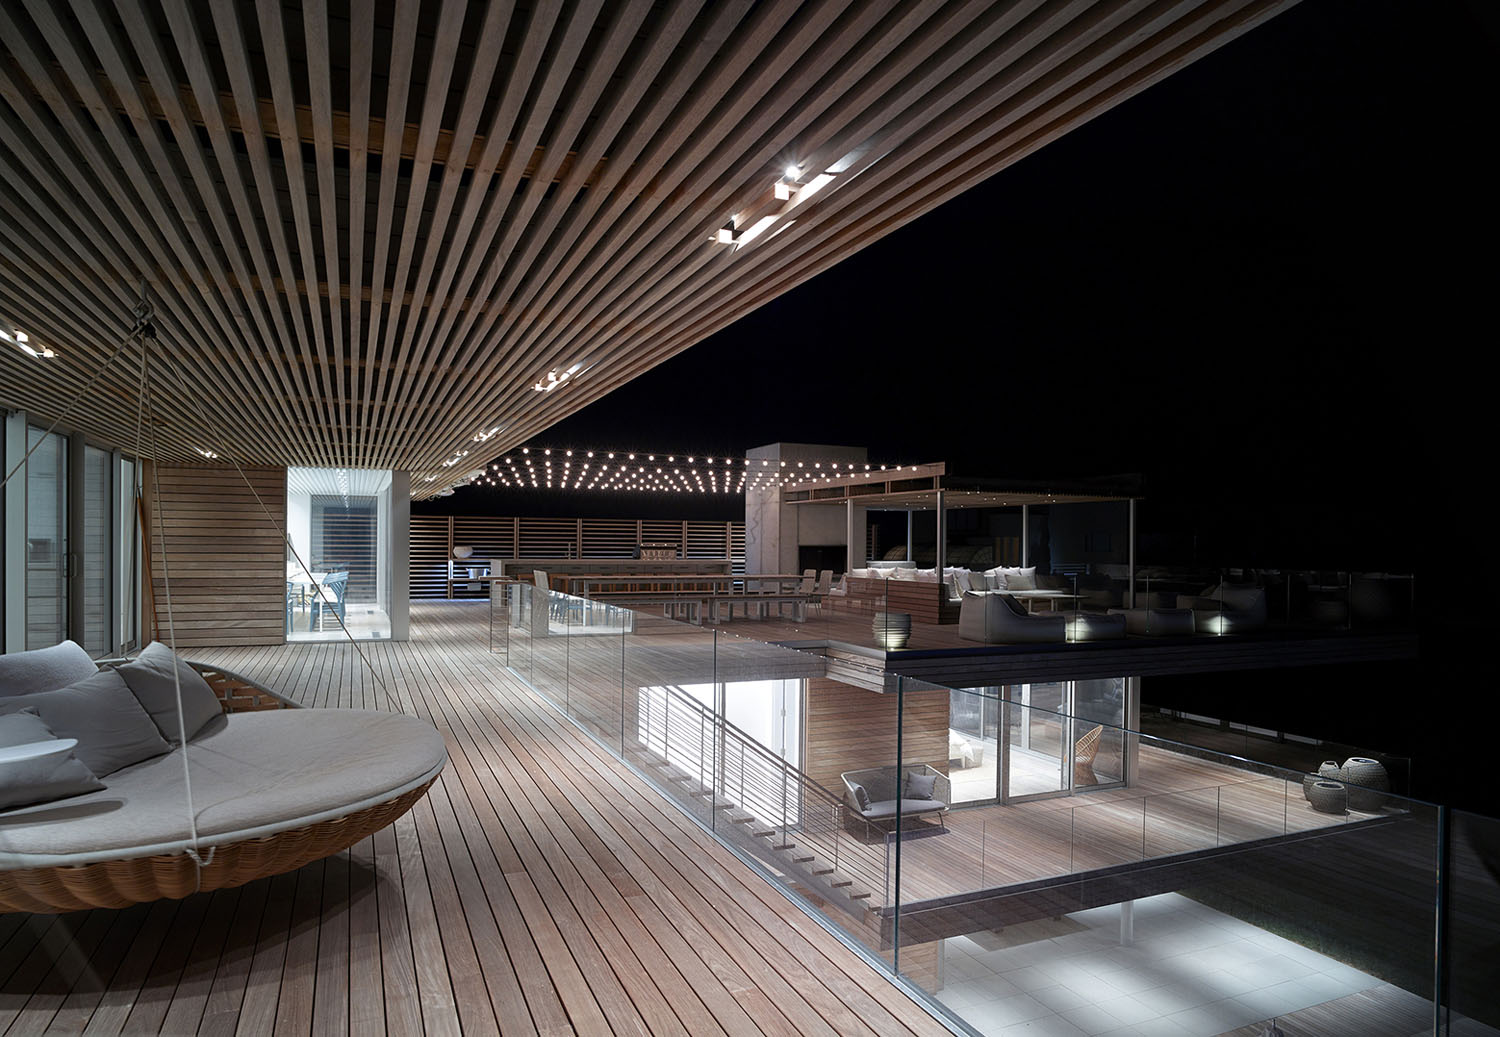 mm_Ocean Deck House design by Stelle Lomont Rouhani Architects_07